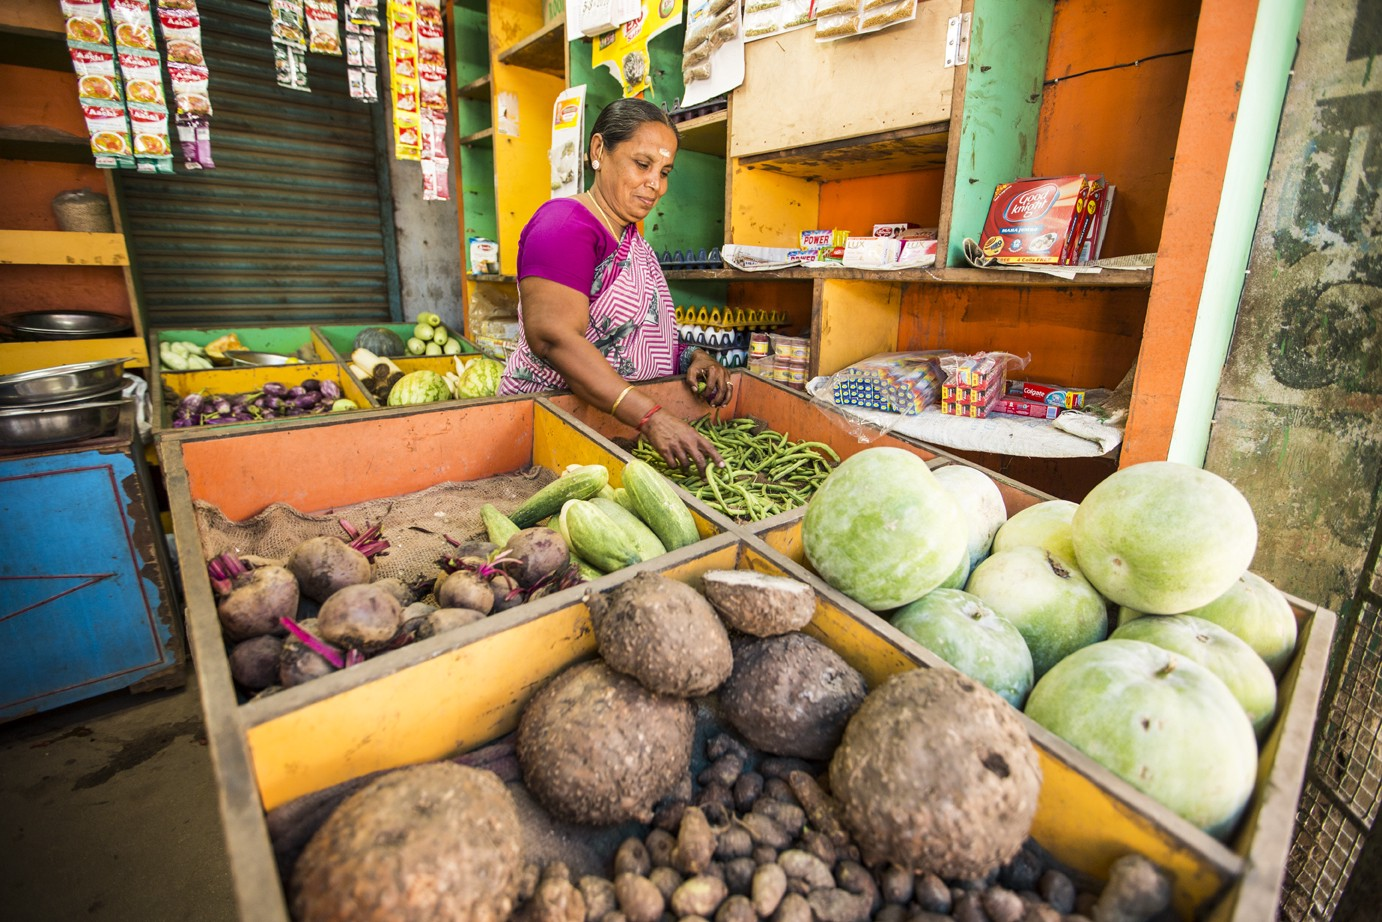 Kalaivani M. is one of Swadhaar's 500,000 clients in India. She uses funding from Swadhaar to support her vegetable shop in the village of Ambalapattu in state of TamilNadu.